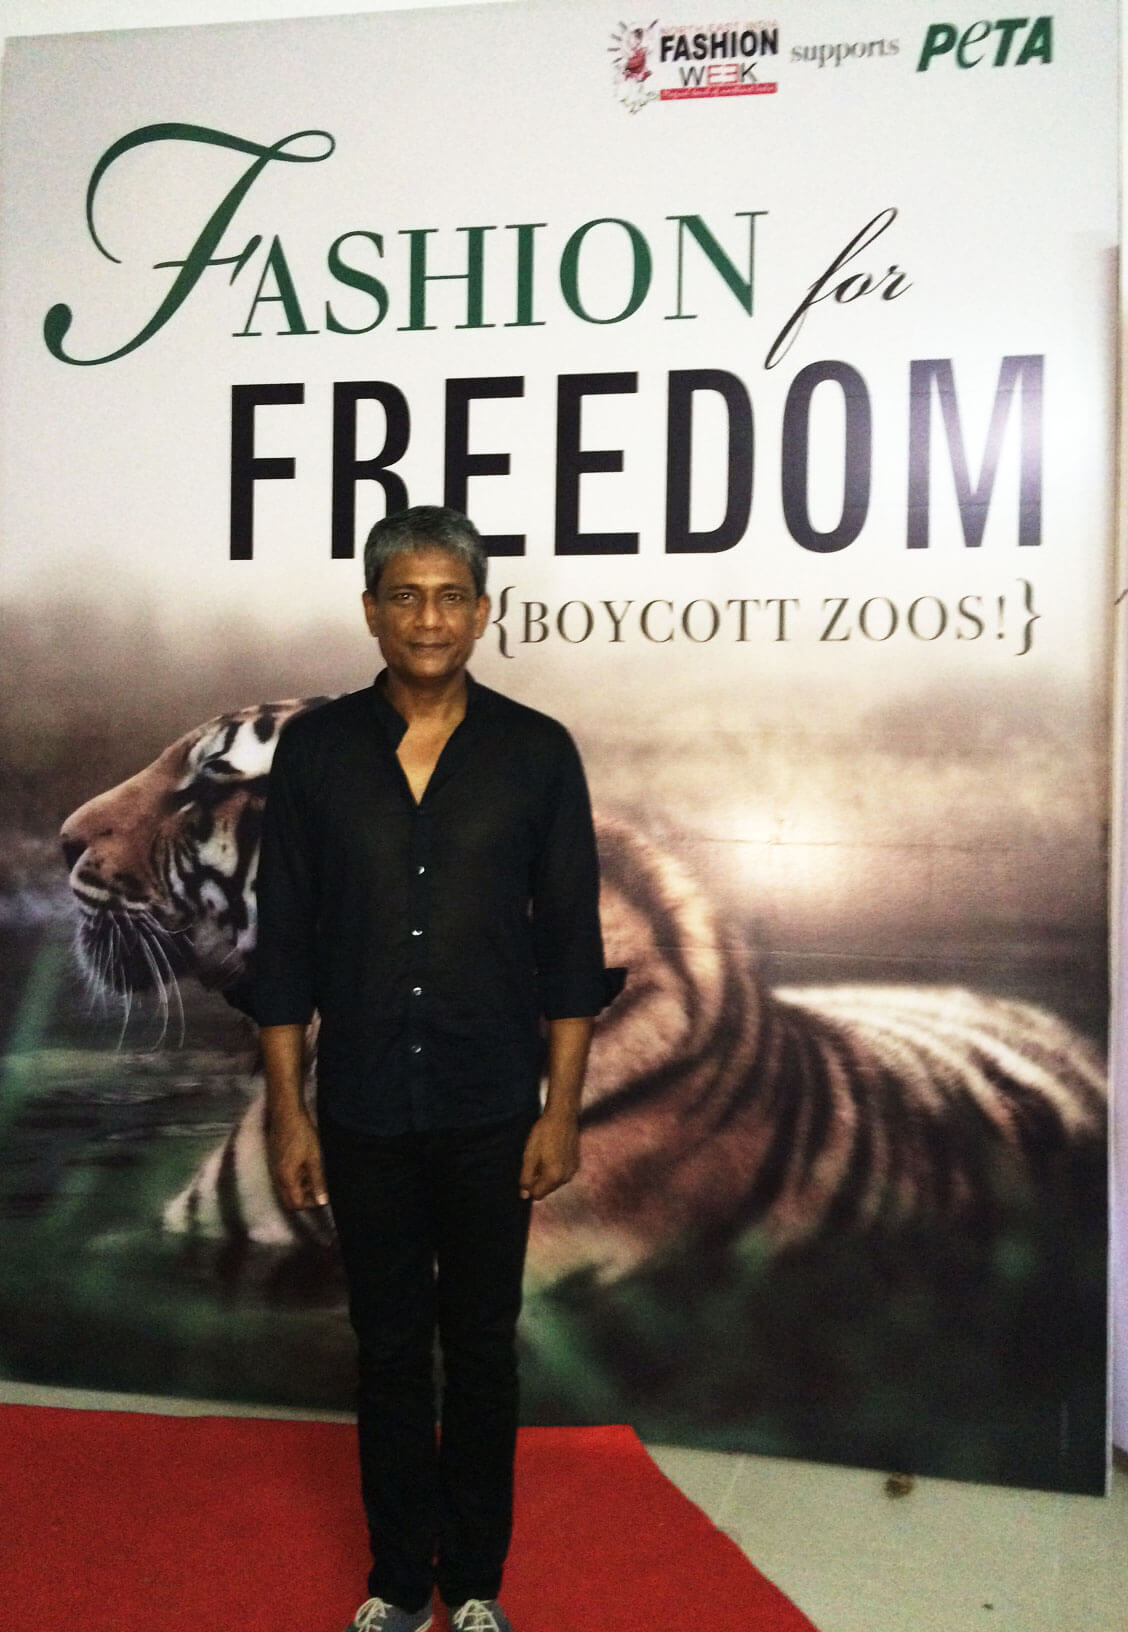 Adil Hussain with PETA Backdrop